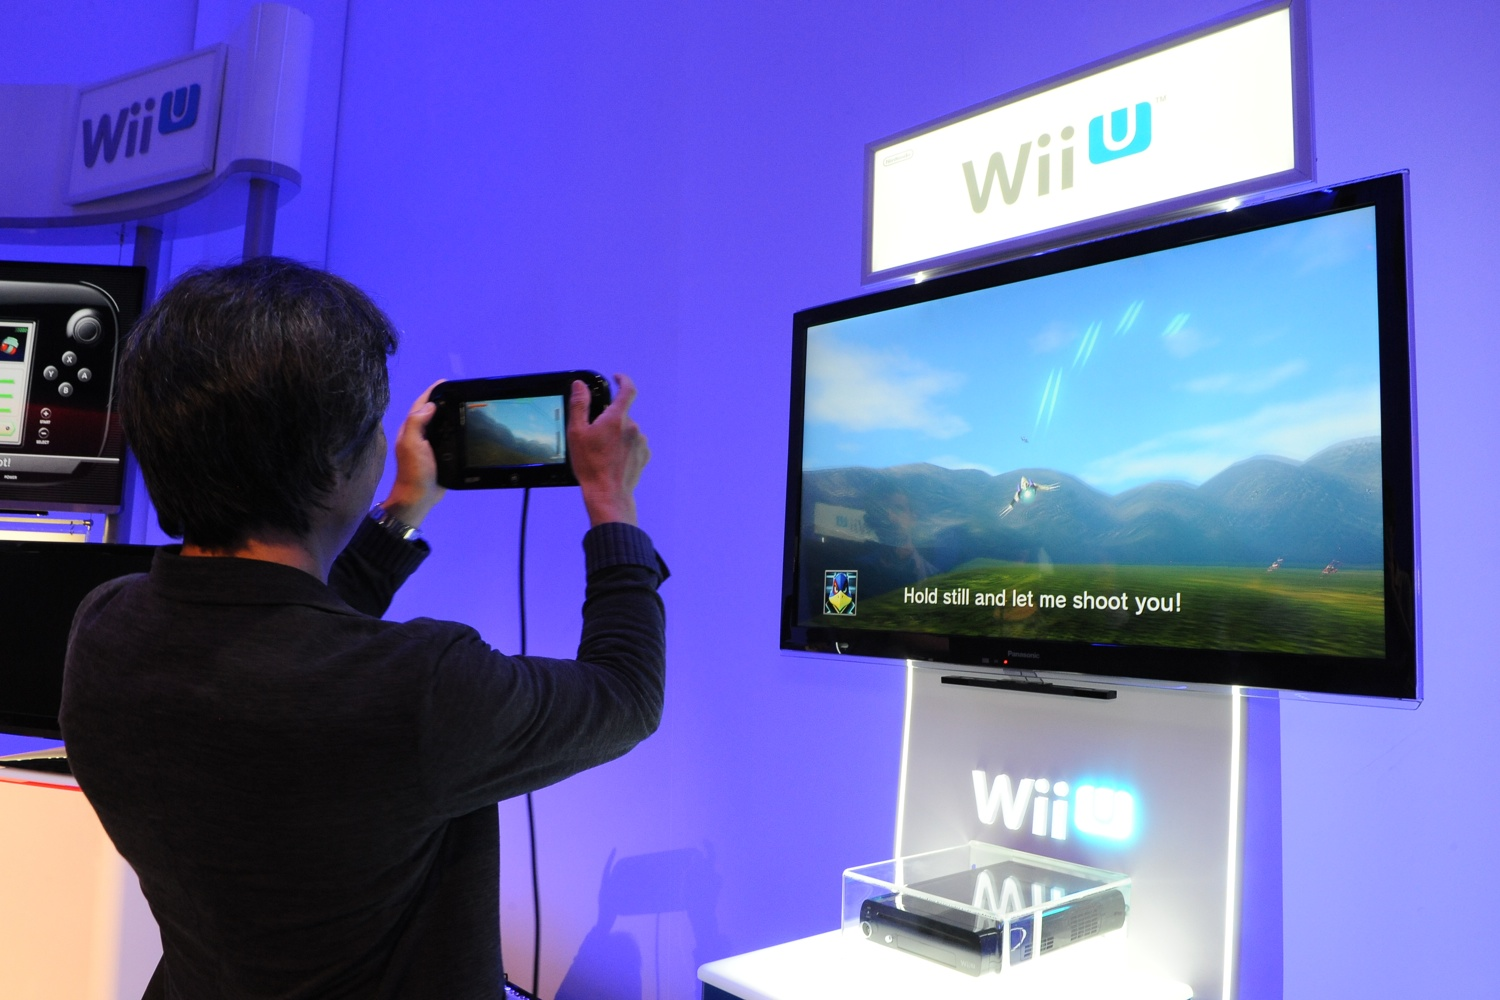 Nintendo's Shigeru Miyamoto demonstrates the new control scheme in Star Fox for the Wii U.